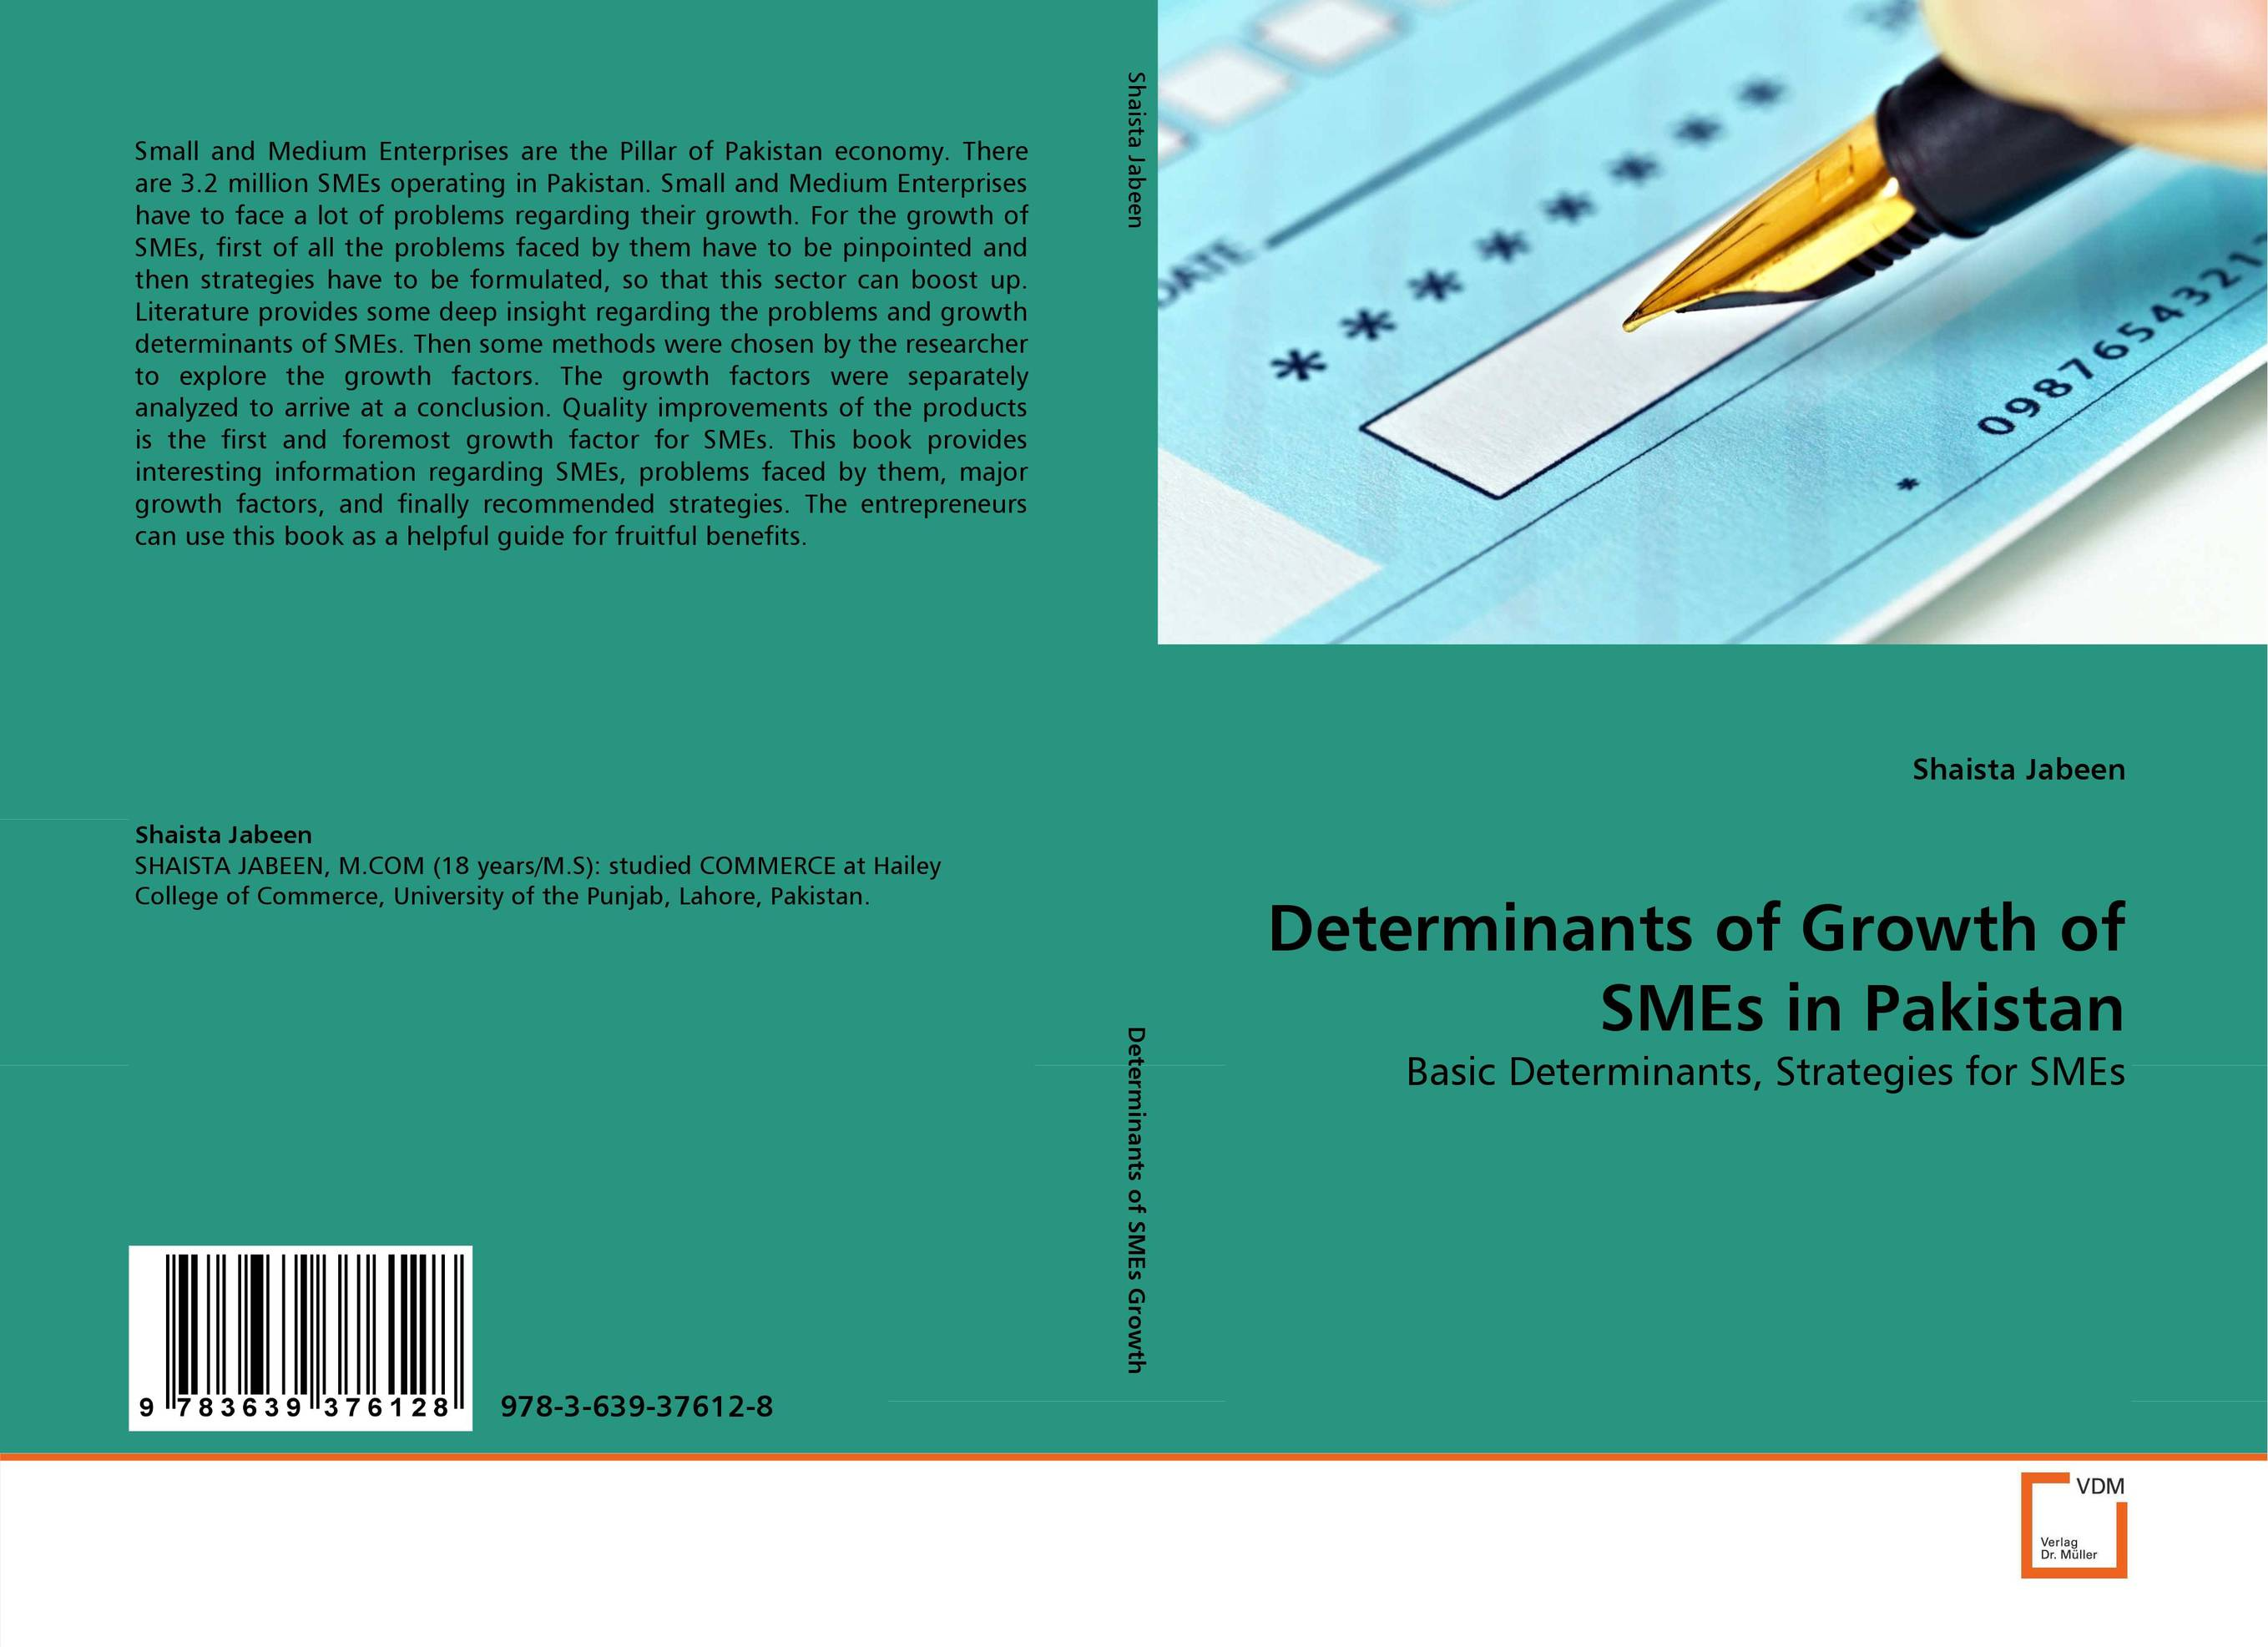 Determinants of Growth of SMEs in Pakistan growth factors